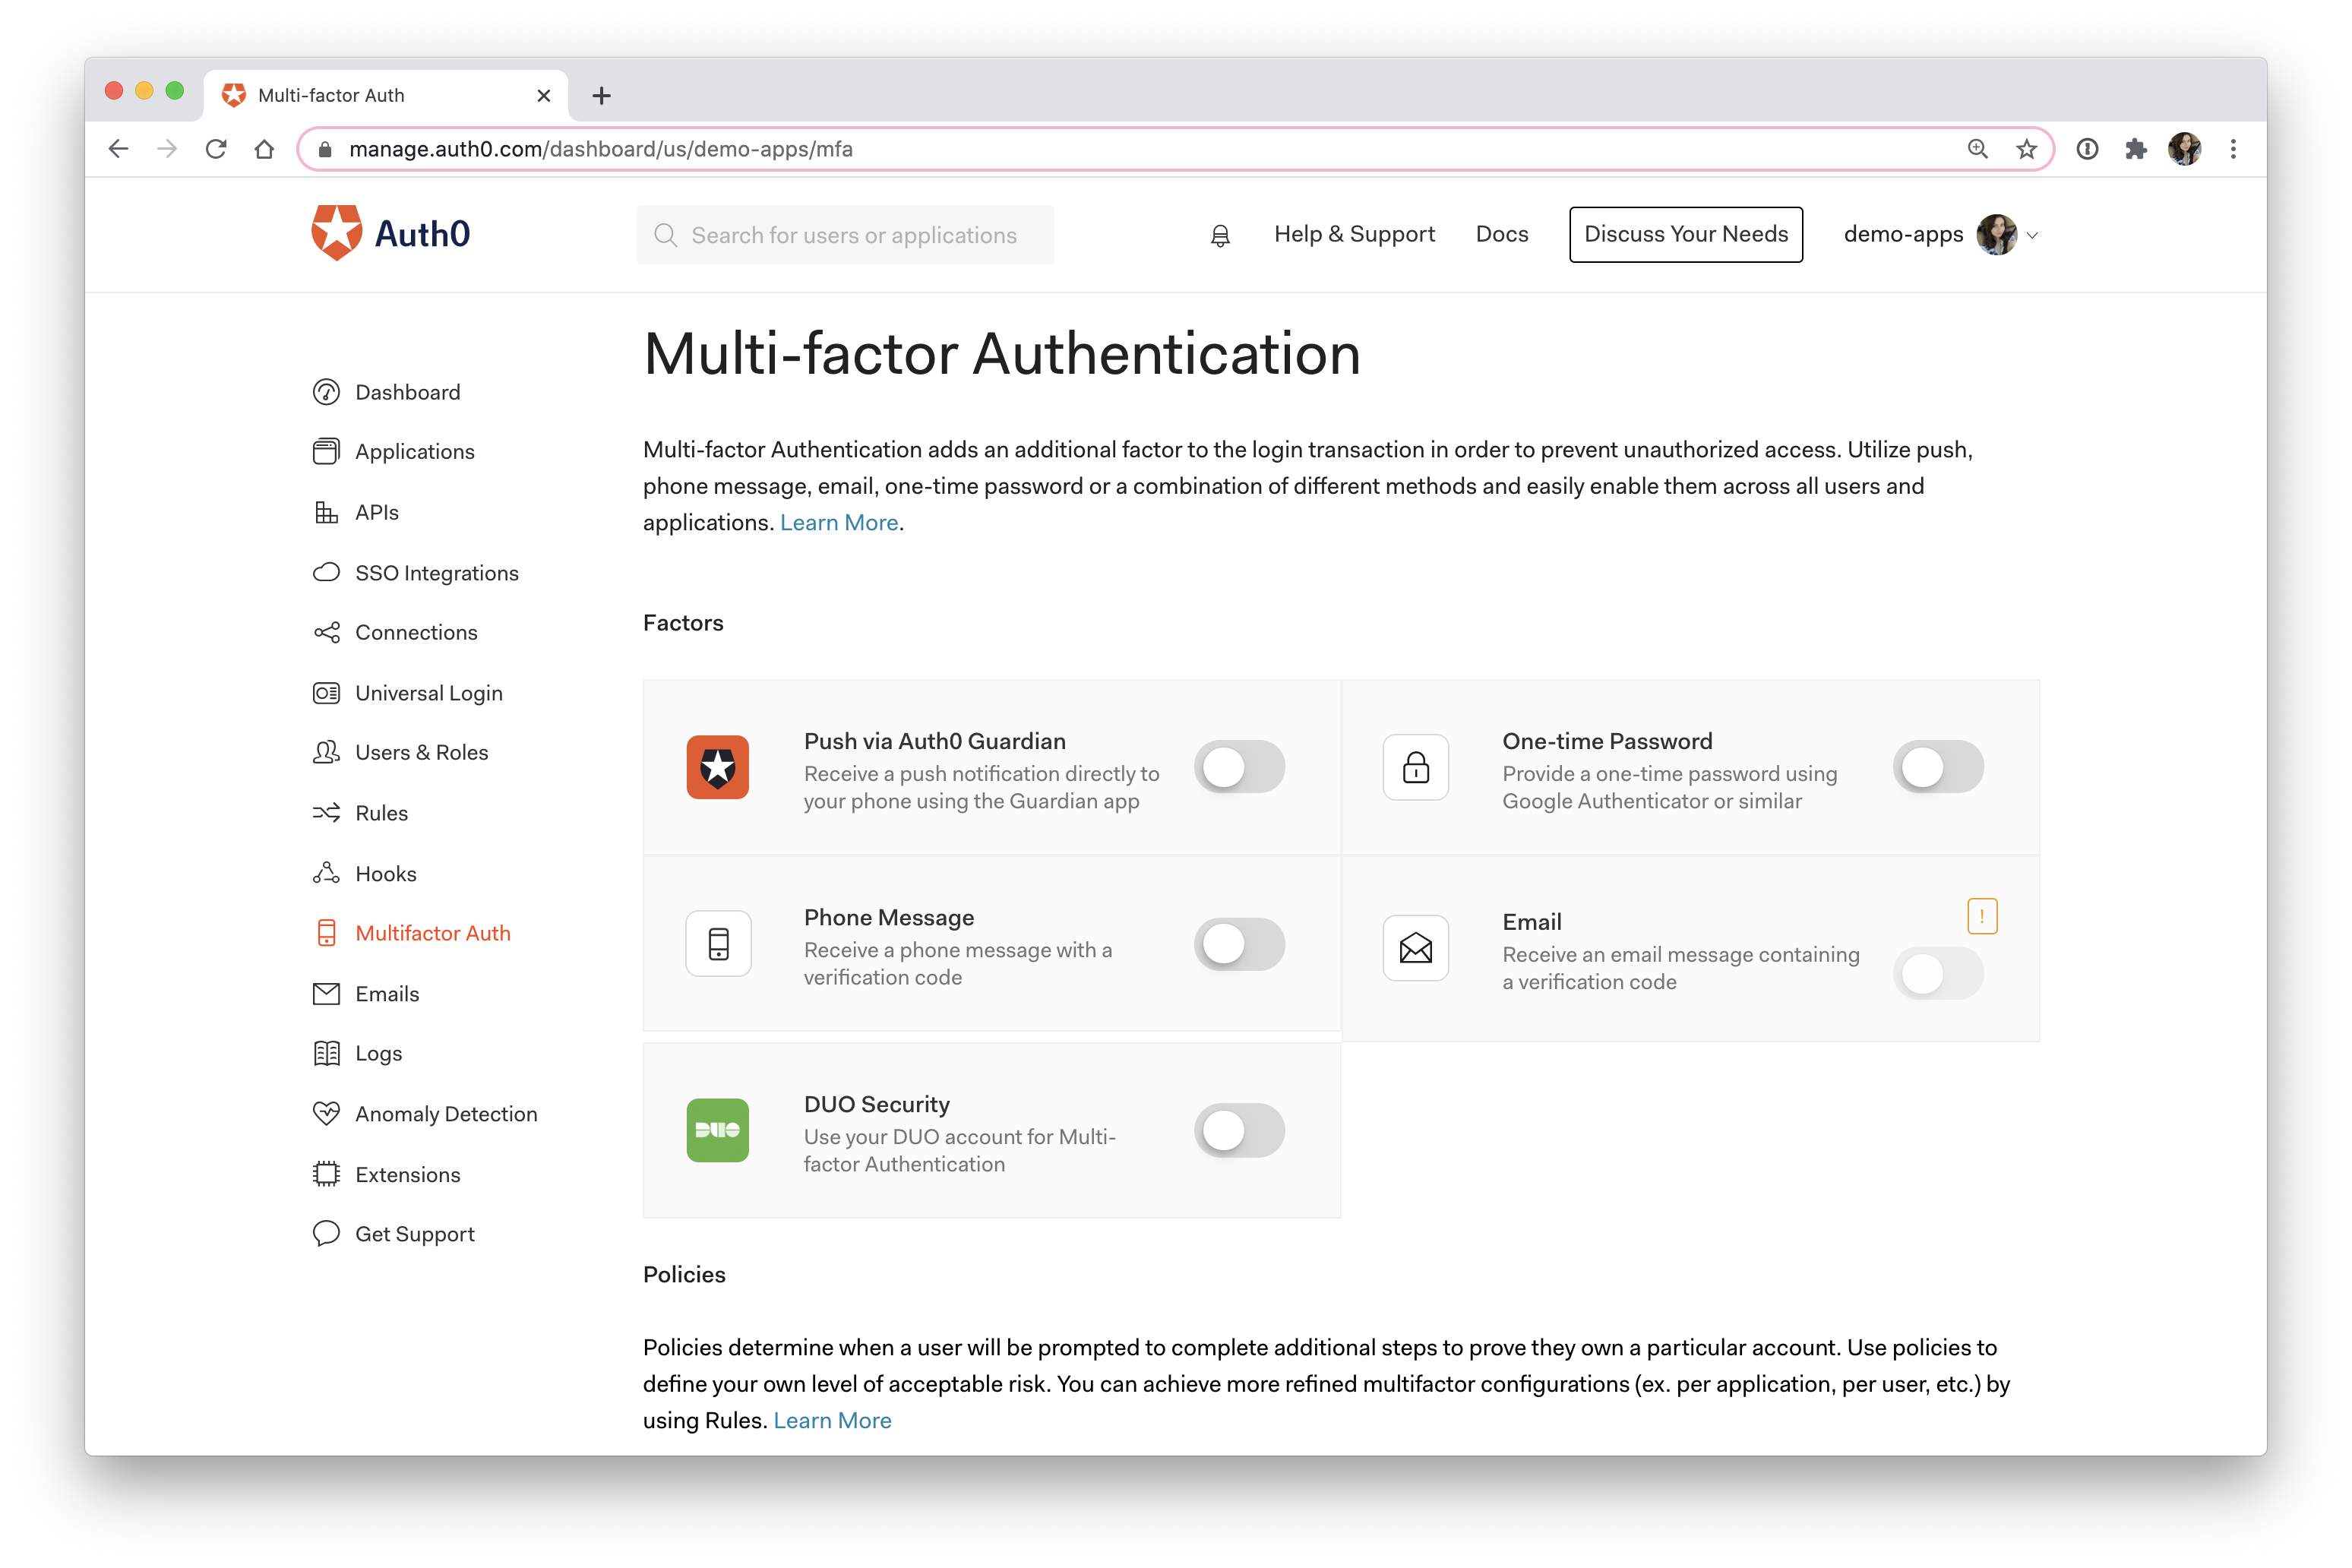 Auth0 multi-factor authentication dashboard